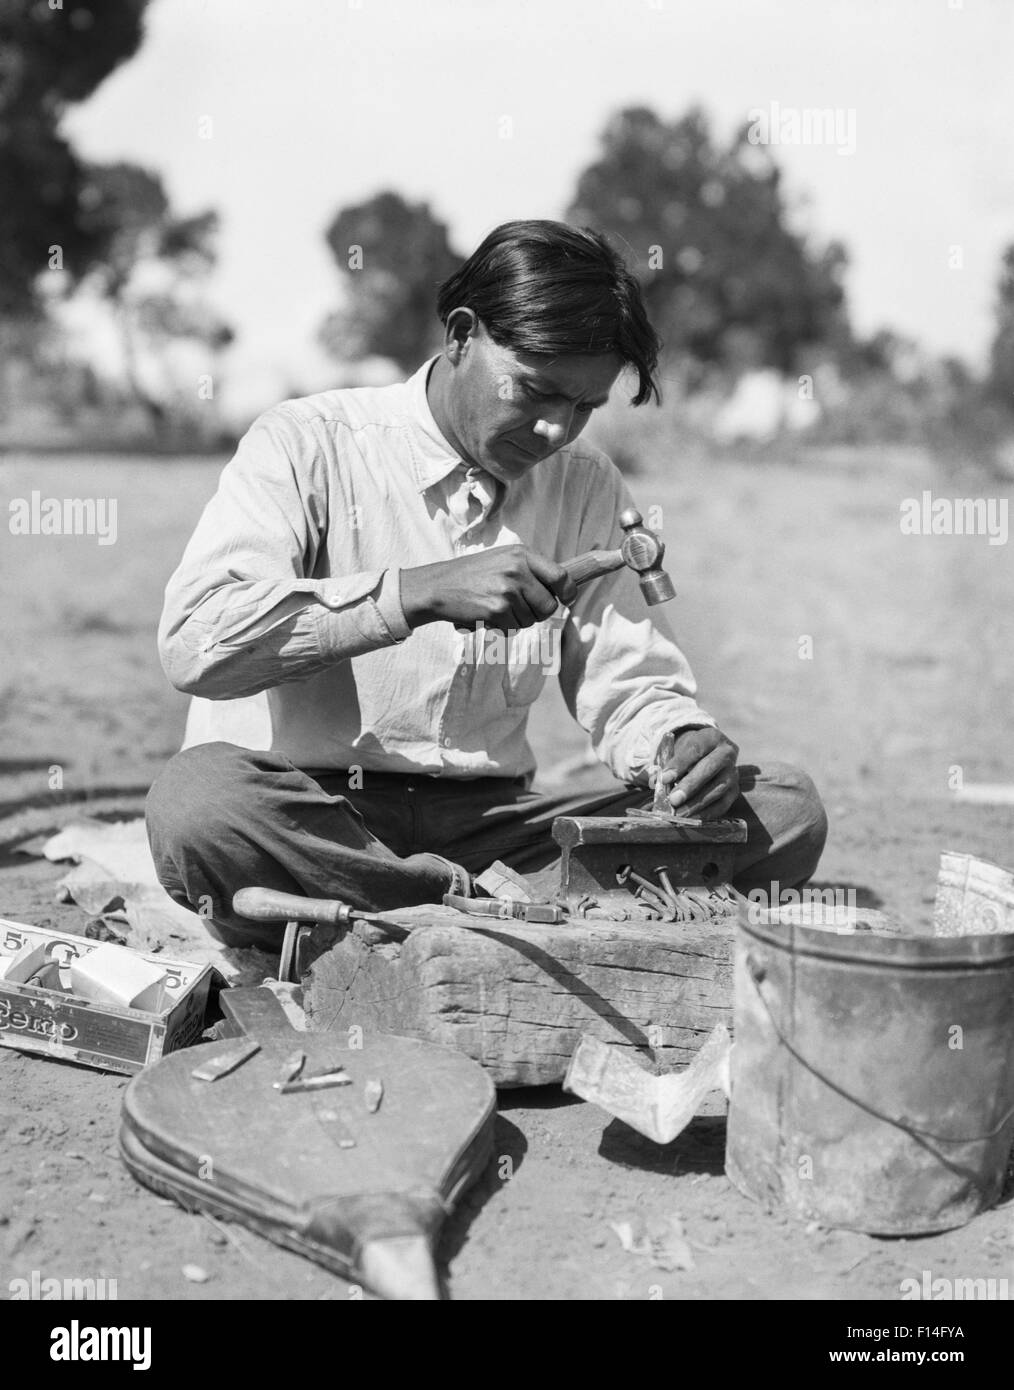 1920s NATIVE AMERICAN INDIAN NAVAJO MAN SILVERSMITH CRAFTSMAN MAKING TRADITIONAL JEWELRY NEW MEXICO USA - Stock Image